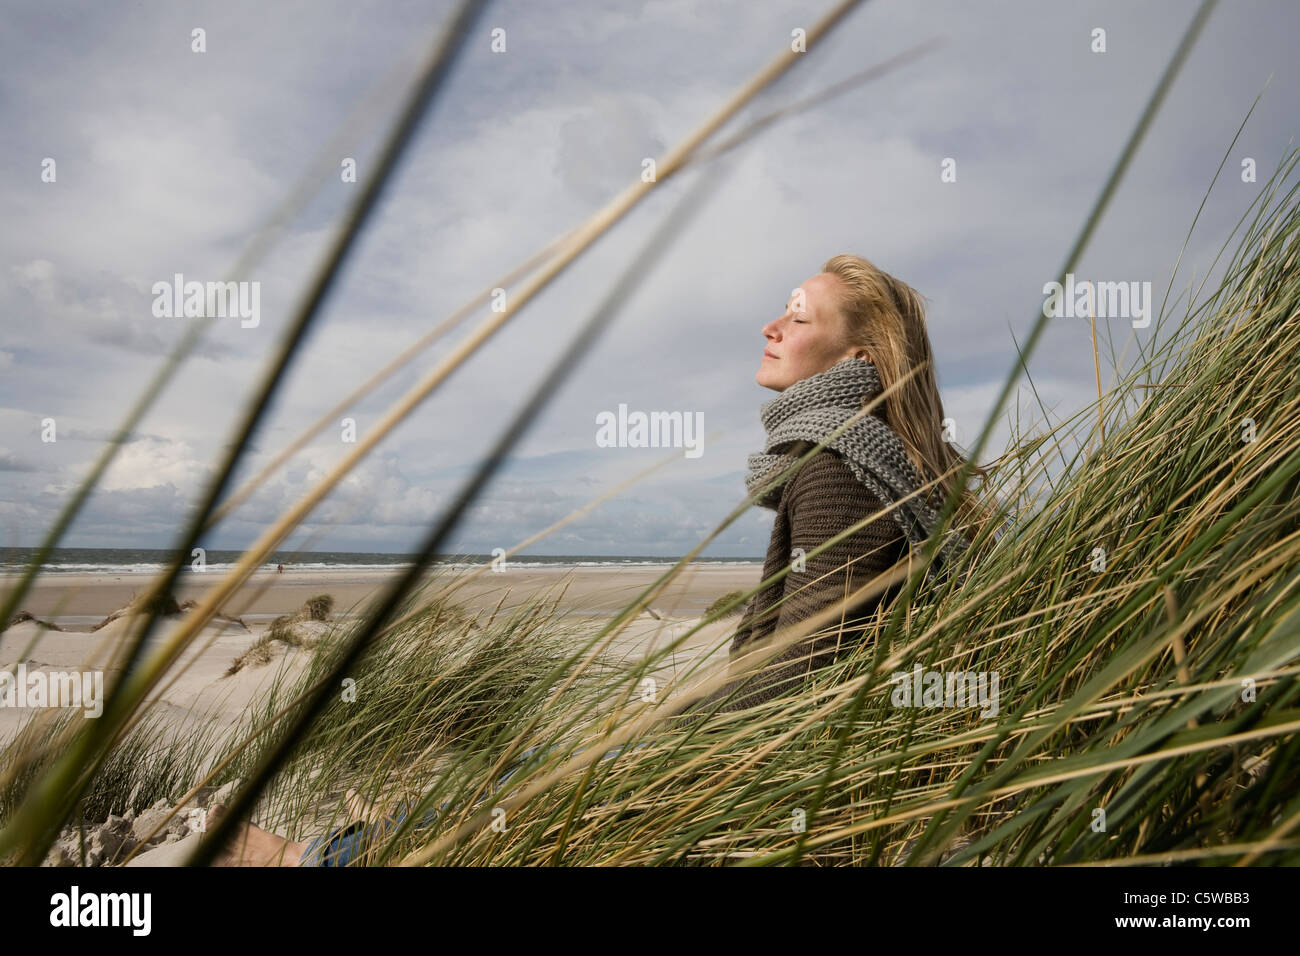 Germany, Schleswig Holstein, Amrum, Young woman on grassy sand dune, eyes closed Stock Photo